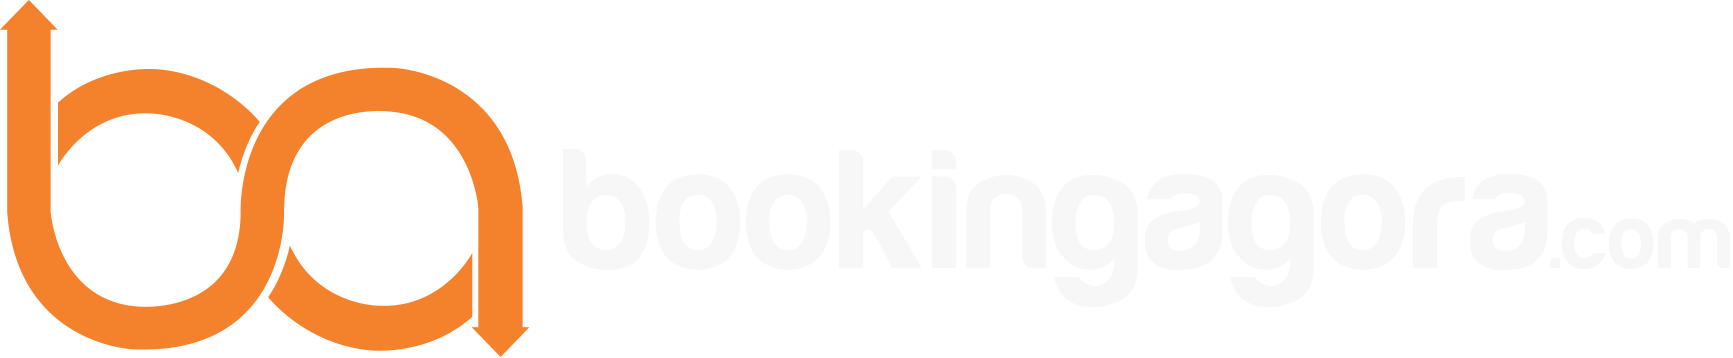 Bookingagora LY